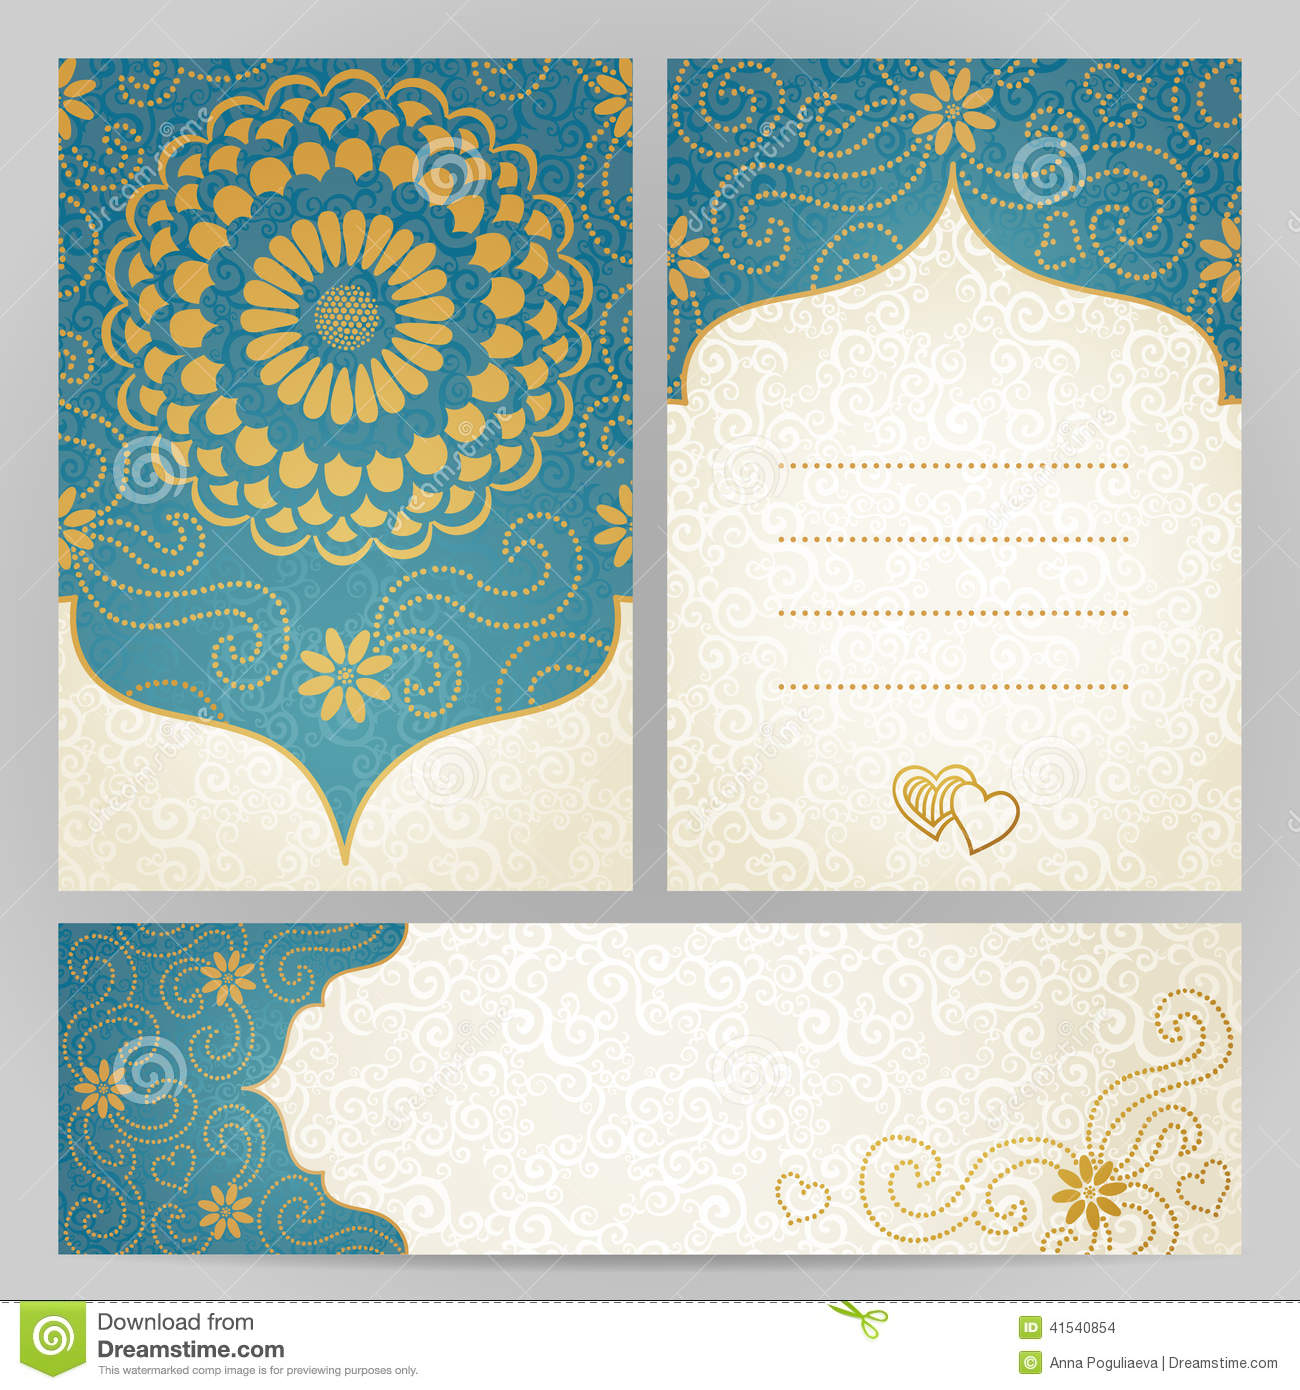 Golden Seamless Border Large Flowers Curls Light Floral Background Can Be Used Wallpaper Pattern Fills Web Page further Pink Butterfly Border Clipart furthermore Bqv H additionally Doodle Circle Water Texture Horizontal Border Vector Seamless Pattern Background Hand Drawn Elements furthermore Blue Corner Md. on swirl border